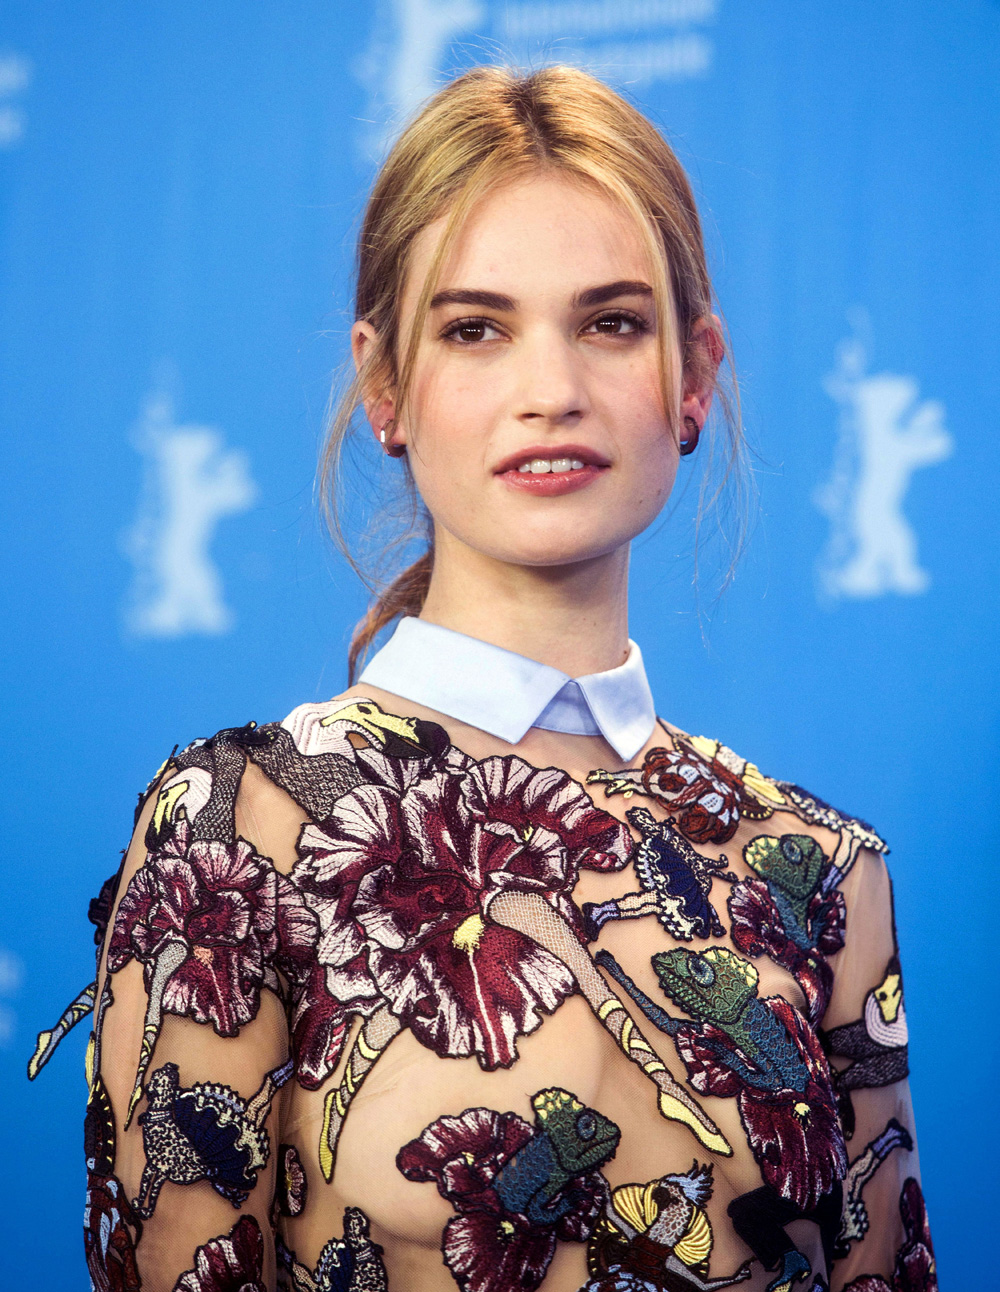 8 Looks That Confirm Lily James Is A Rising Red Carpet Fashion Star To Watch